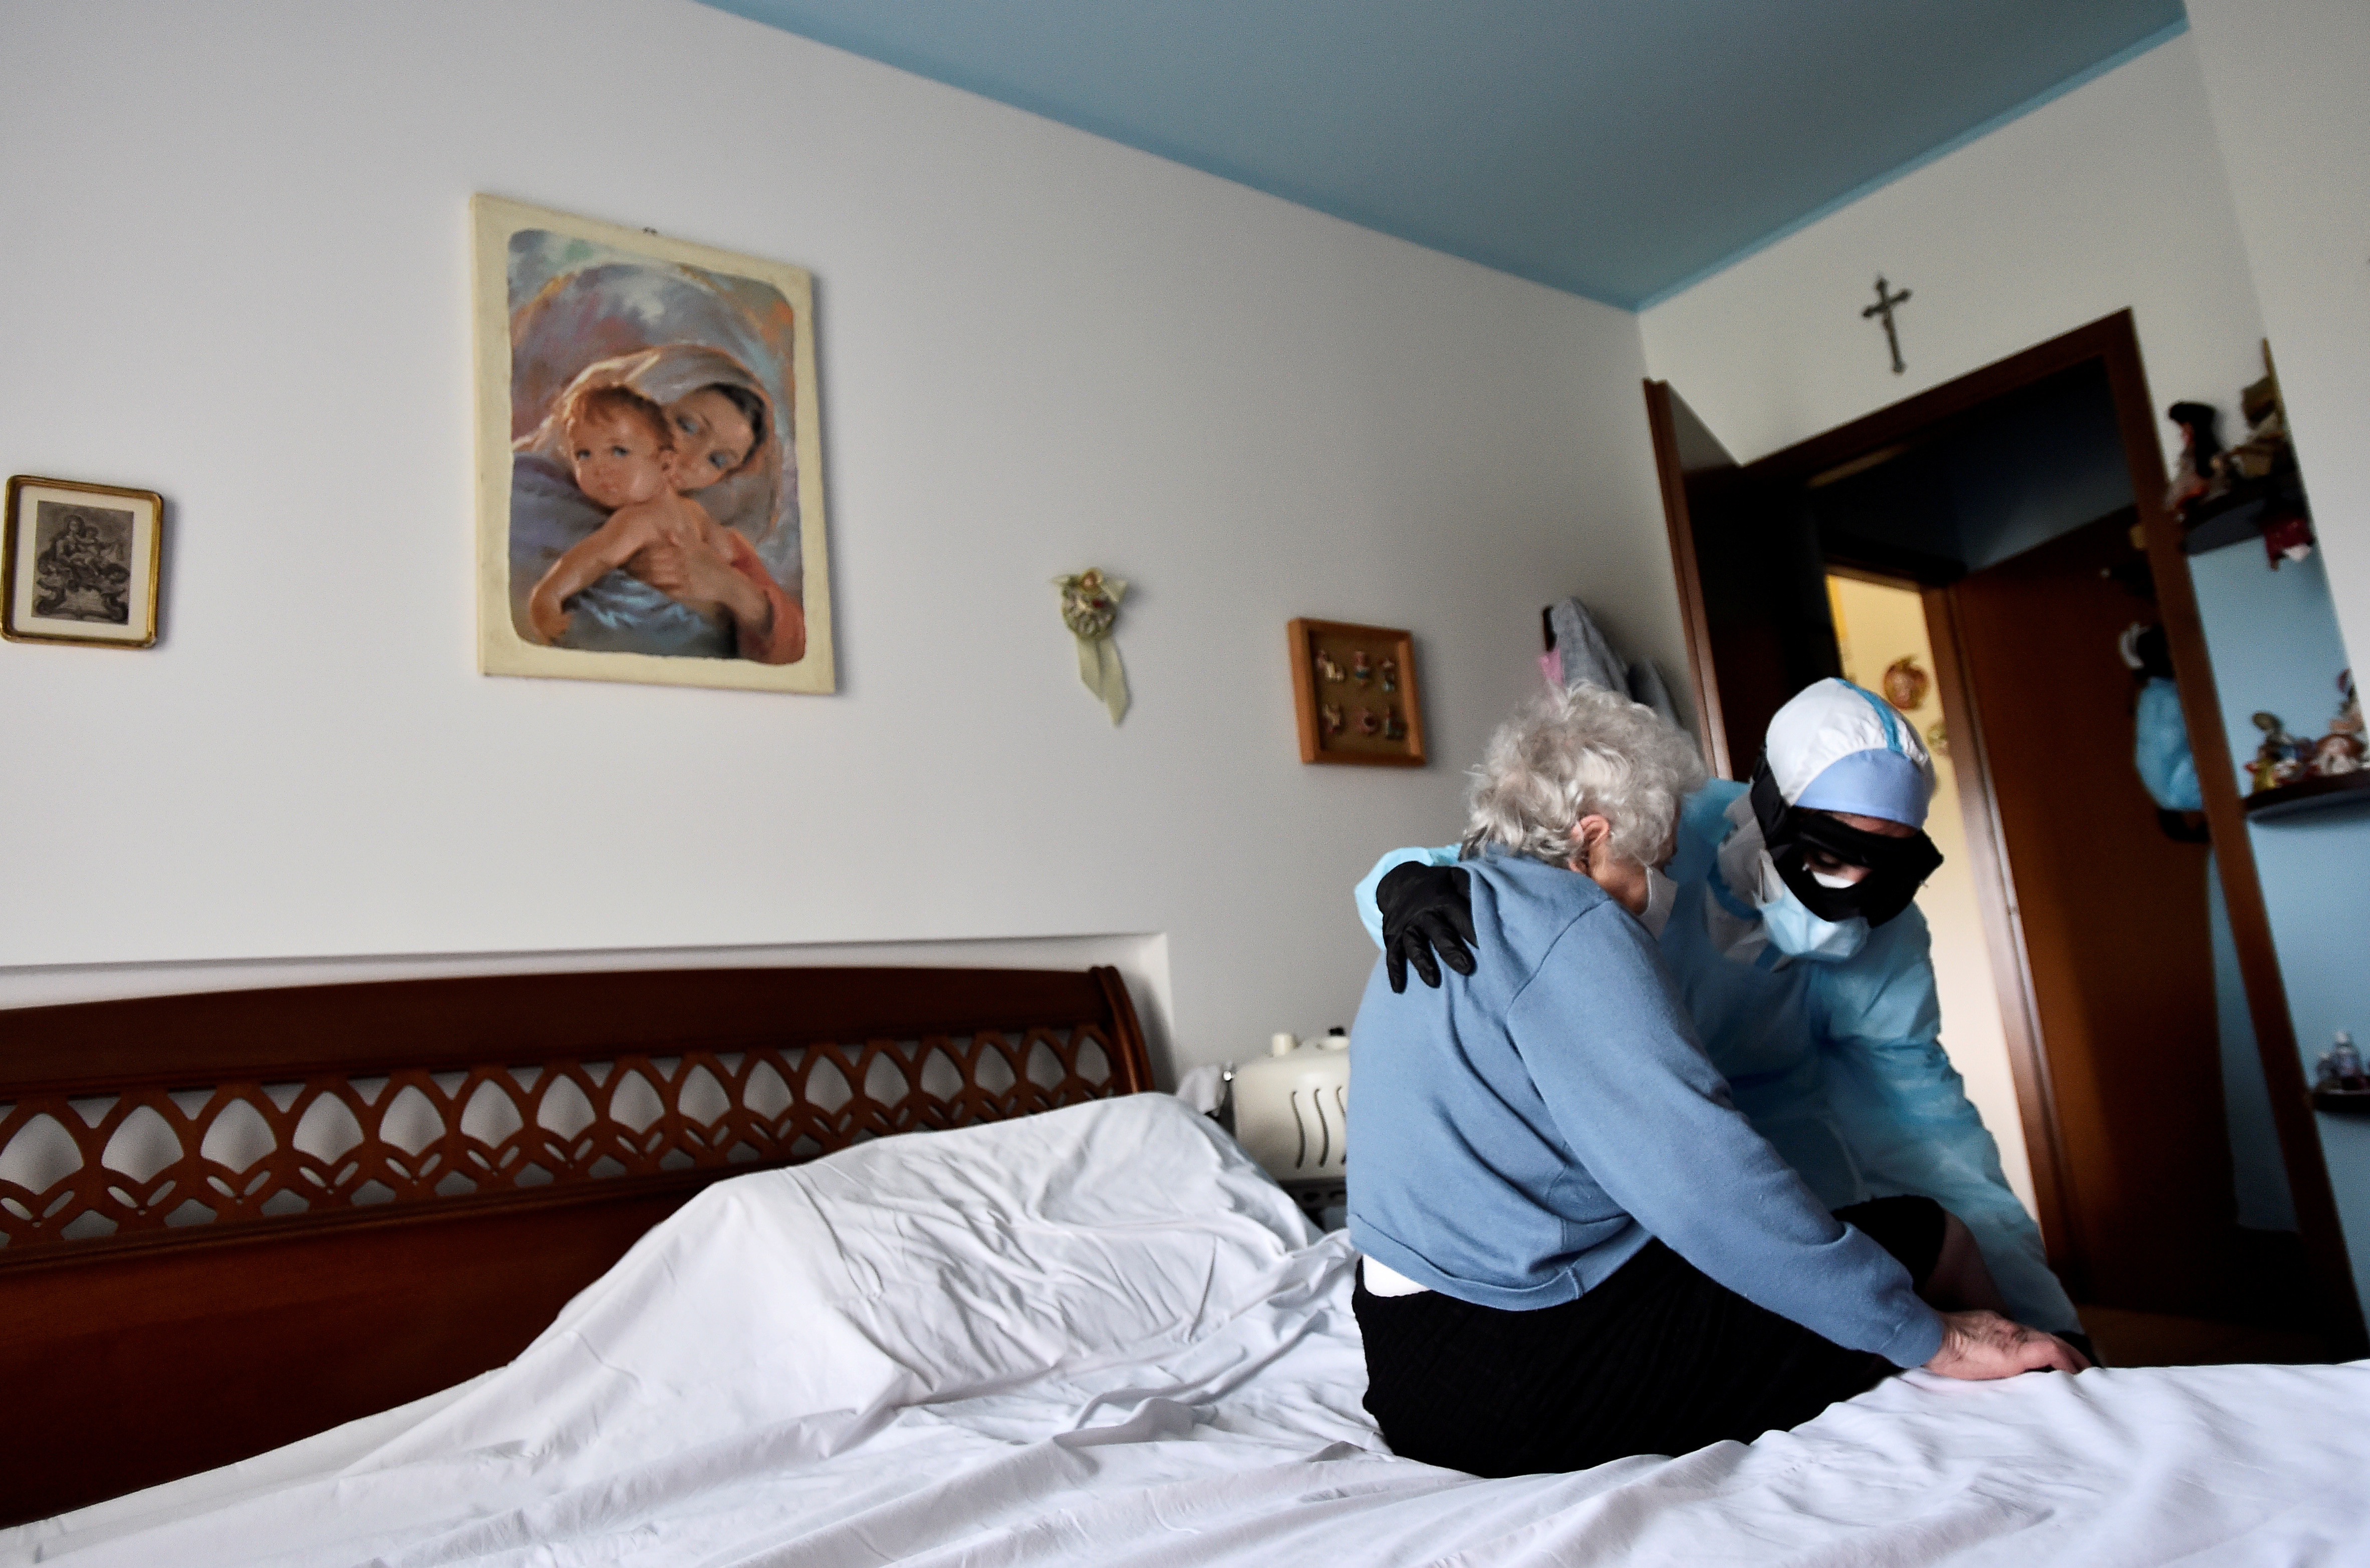 A doctor in protective suit visits the home of a person suffering from the coronavirus disease (COVID-19) in Bergamo, the epicentre of Italy's outbreak, April 16, 2020. Patients with symptoms that are not too severe are treated at home in Bergamo, to avoid overcrowding hospitals already overwhelmed with patients needing intensive care